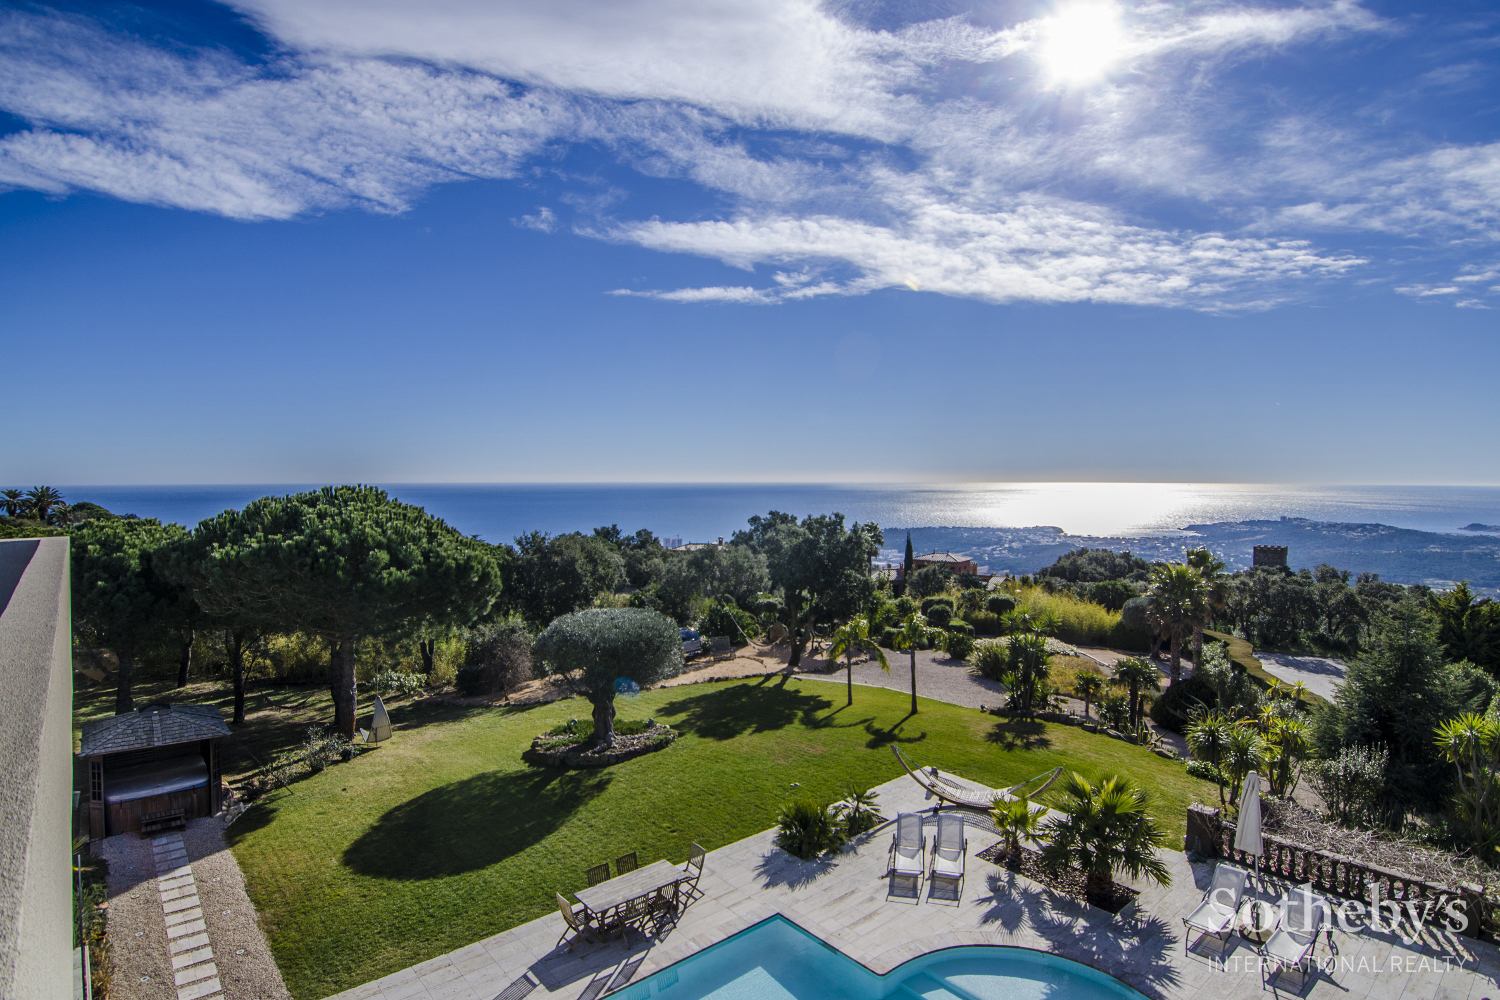 Single Family Home for Sale at Spectacular property with magnificent sea views Playa De Aro, Costa Brava 17250 Spain